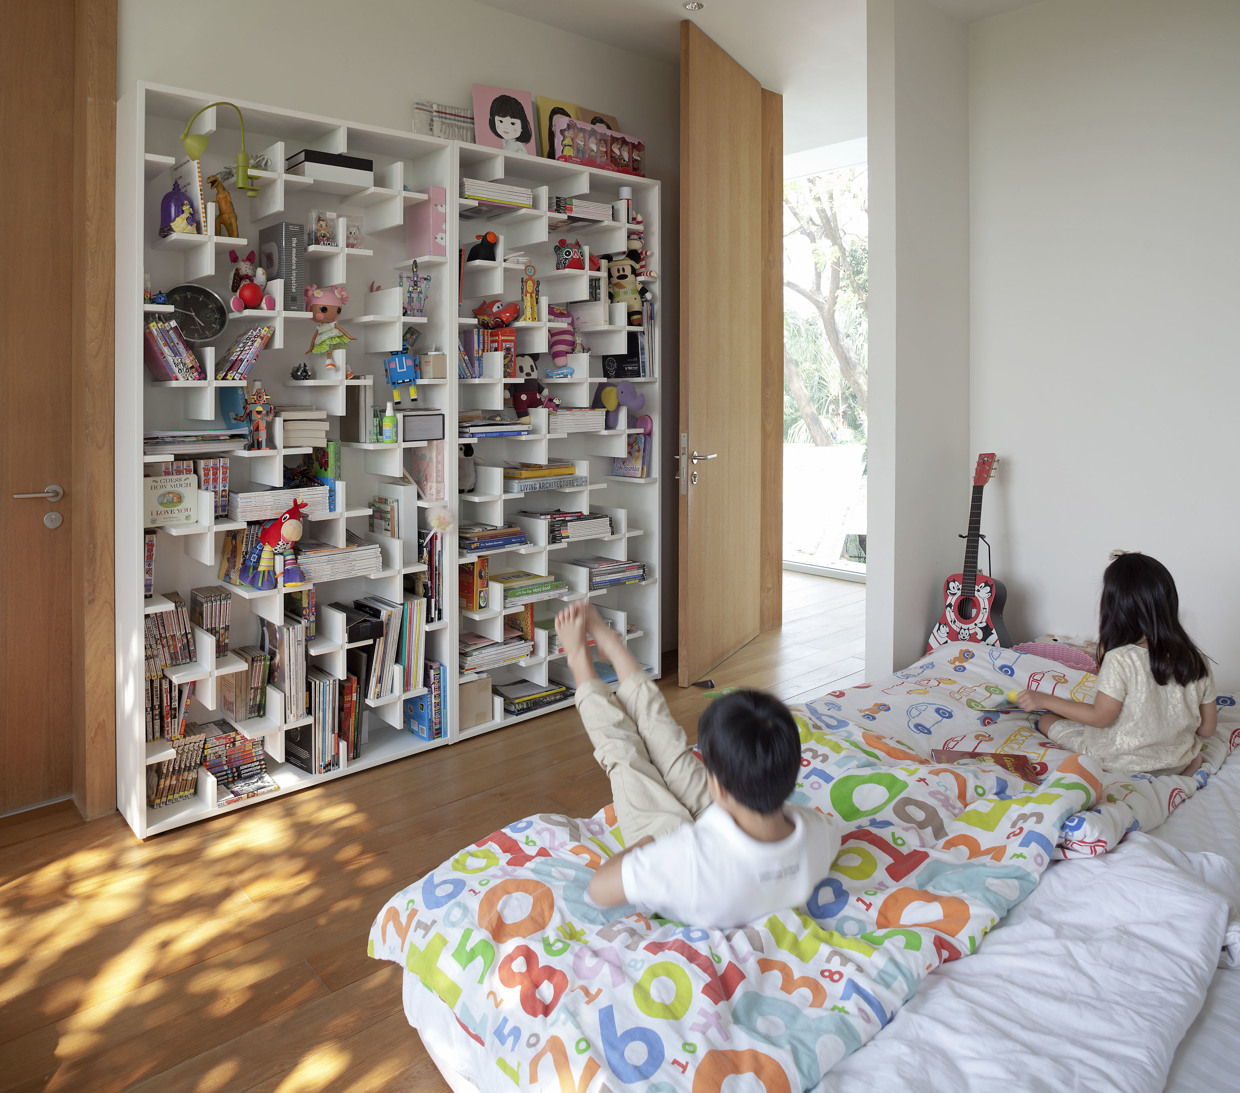 Creative kids room interior design ideas for Room layouts for bedrooms